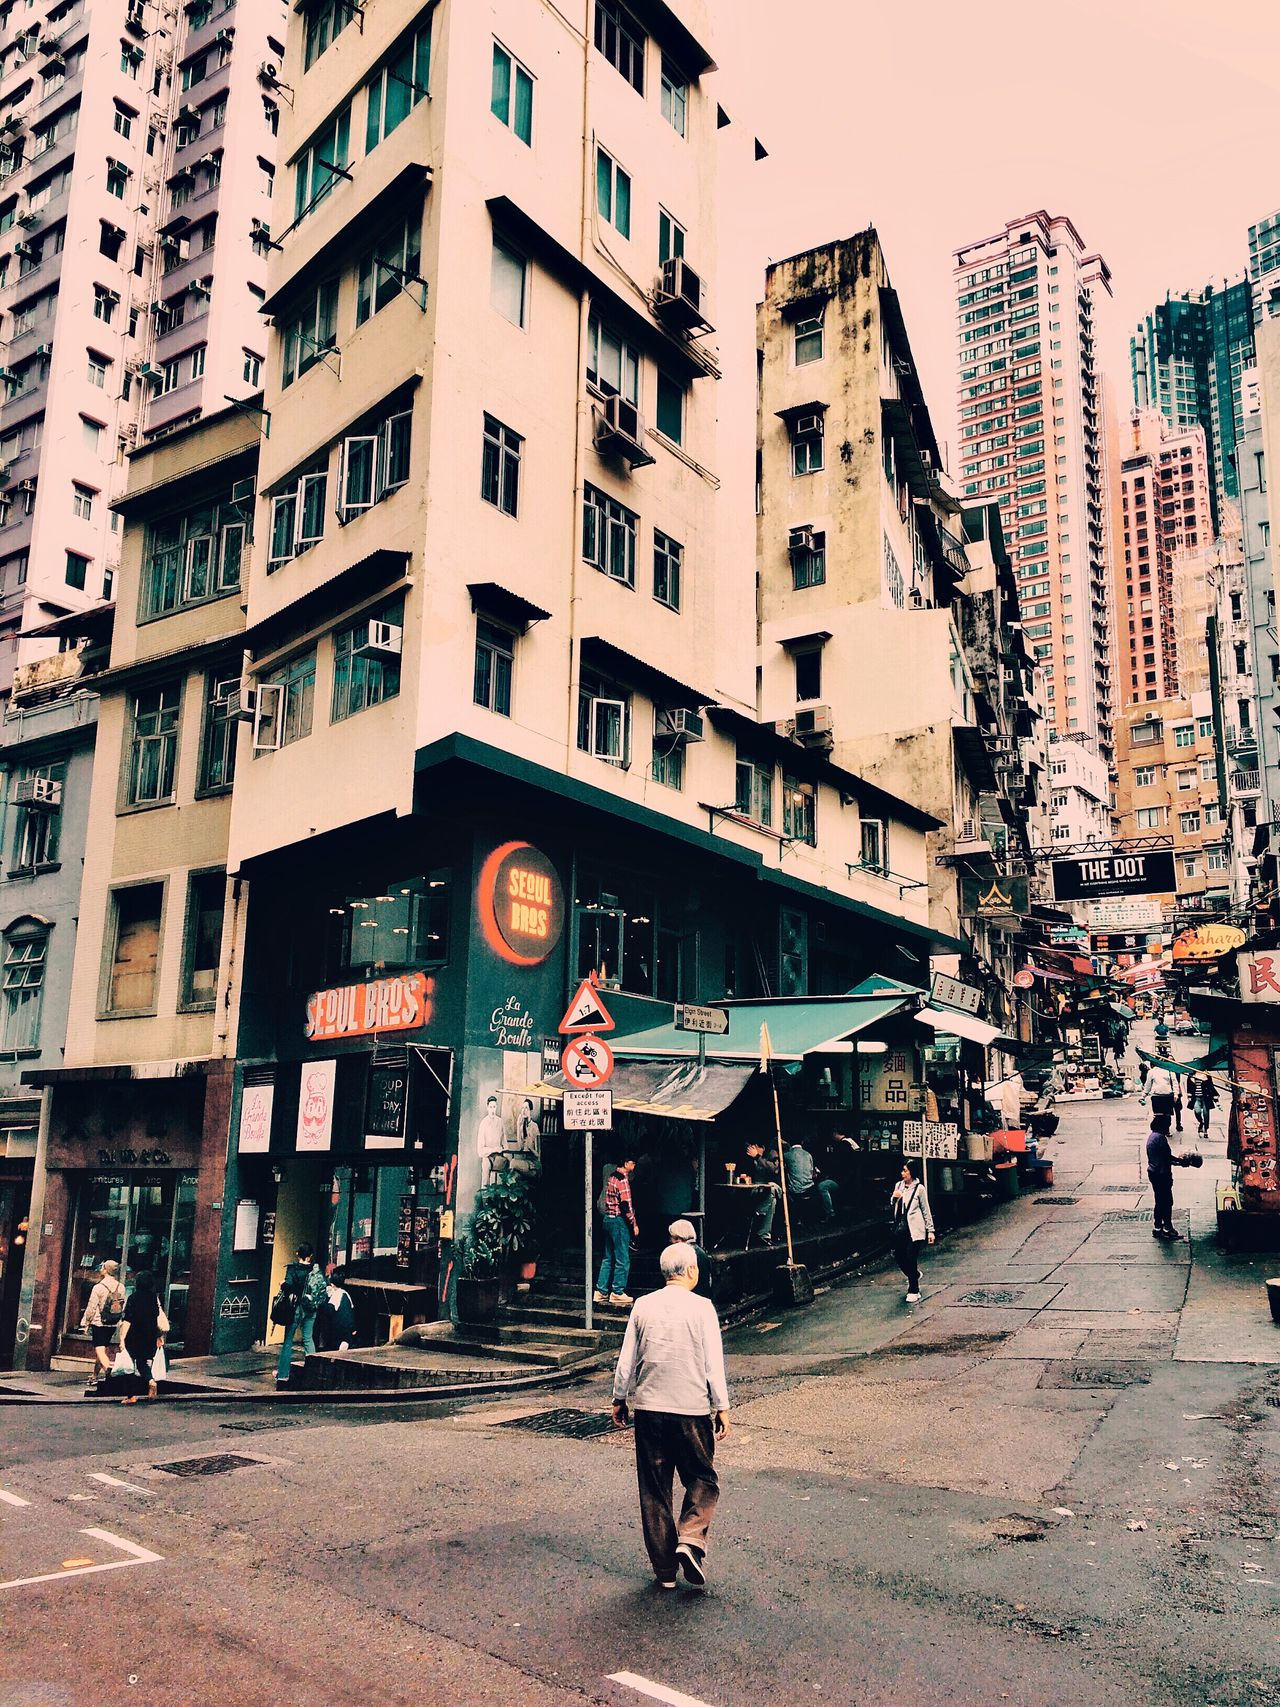 Here Belongs To Me City Life Asianstyle Streetphotography The Street Photographer - 2016 EyeEm Awards My Commute Urban Exploration Urban Lifestyle Life Street Photography